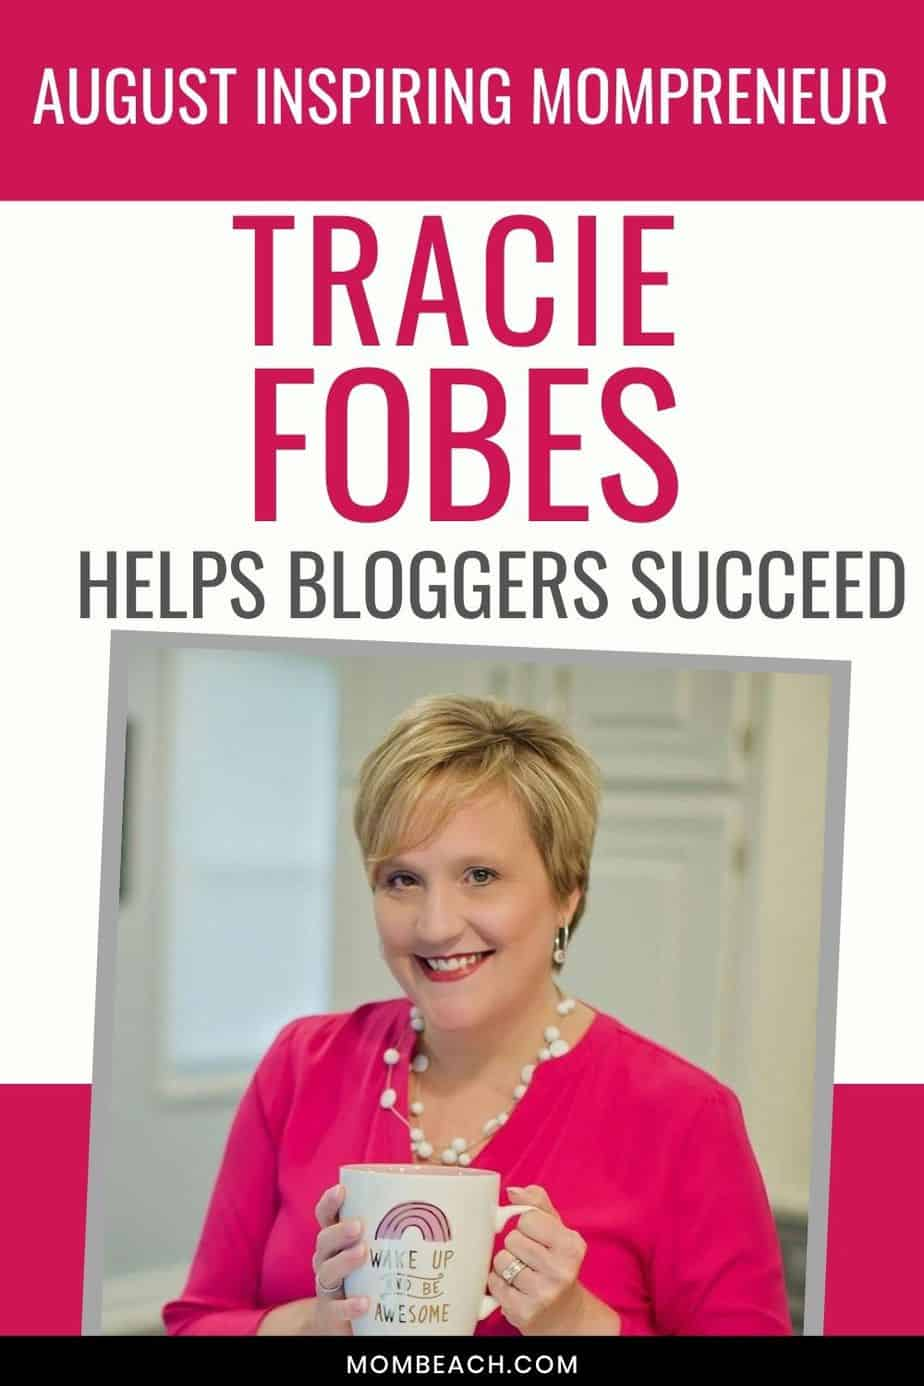 The August Inspiring Mompreneur is Tracie Fobes, who helps bloggers succeed through her courses and coaching. Tracie is an experienced blogger that helps other bloggers make money online. She is great for beginning bloggers who are looking to make money blogging. #traciefobes #makemoneyblogging #bloggingforbeginners #blogging101